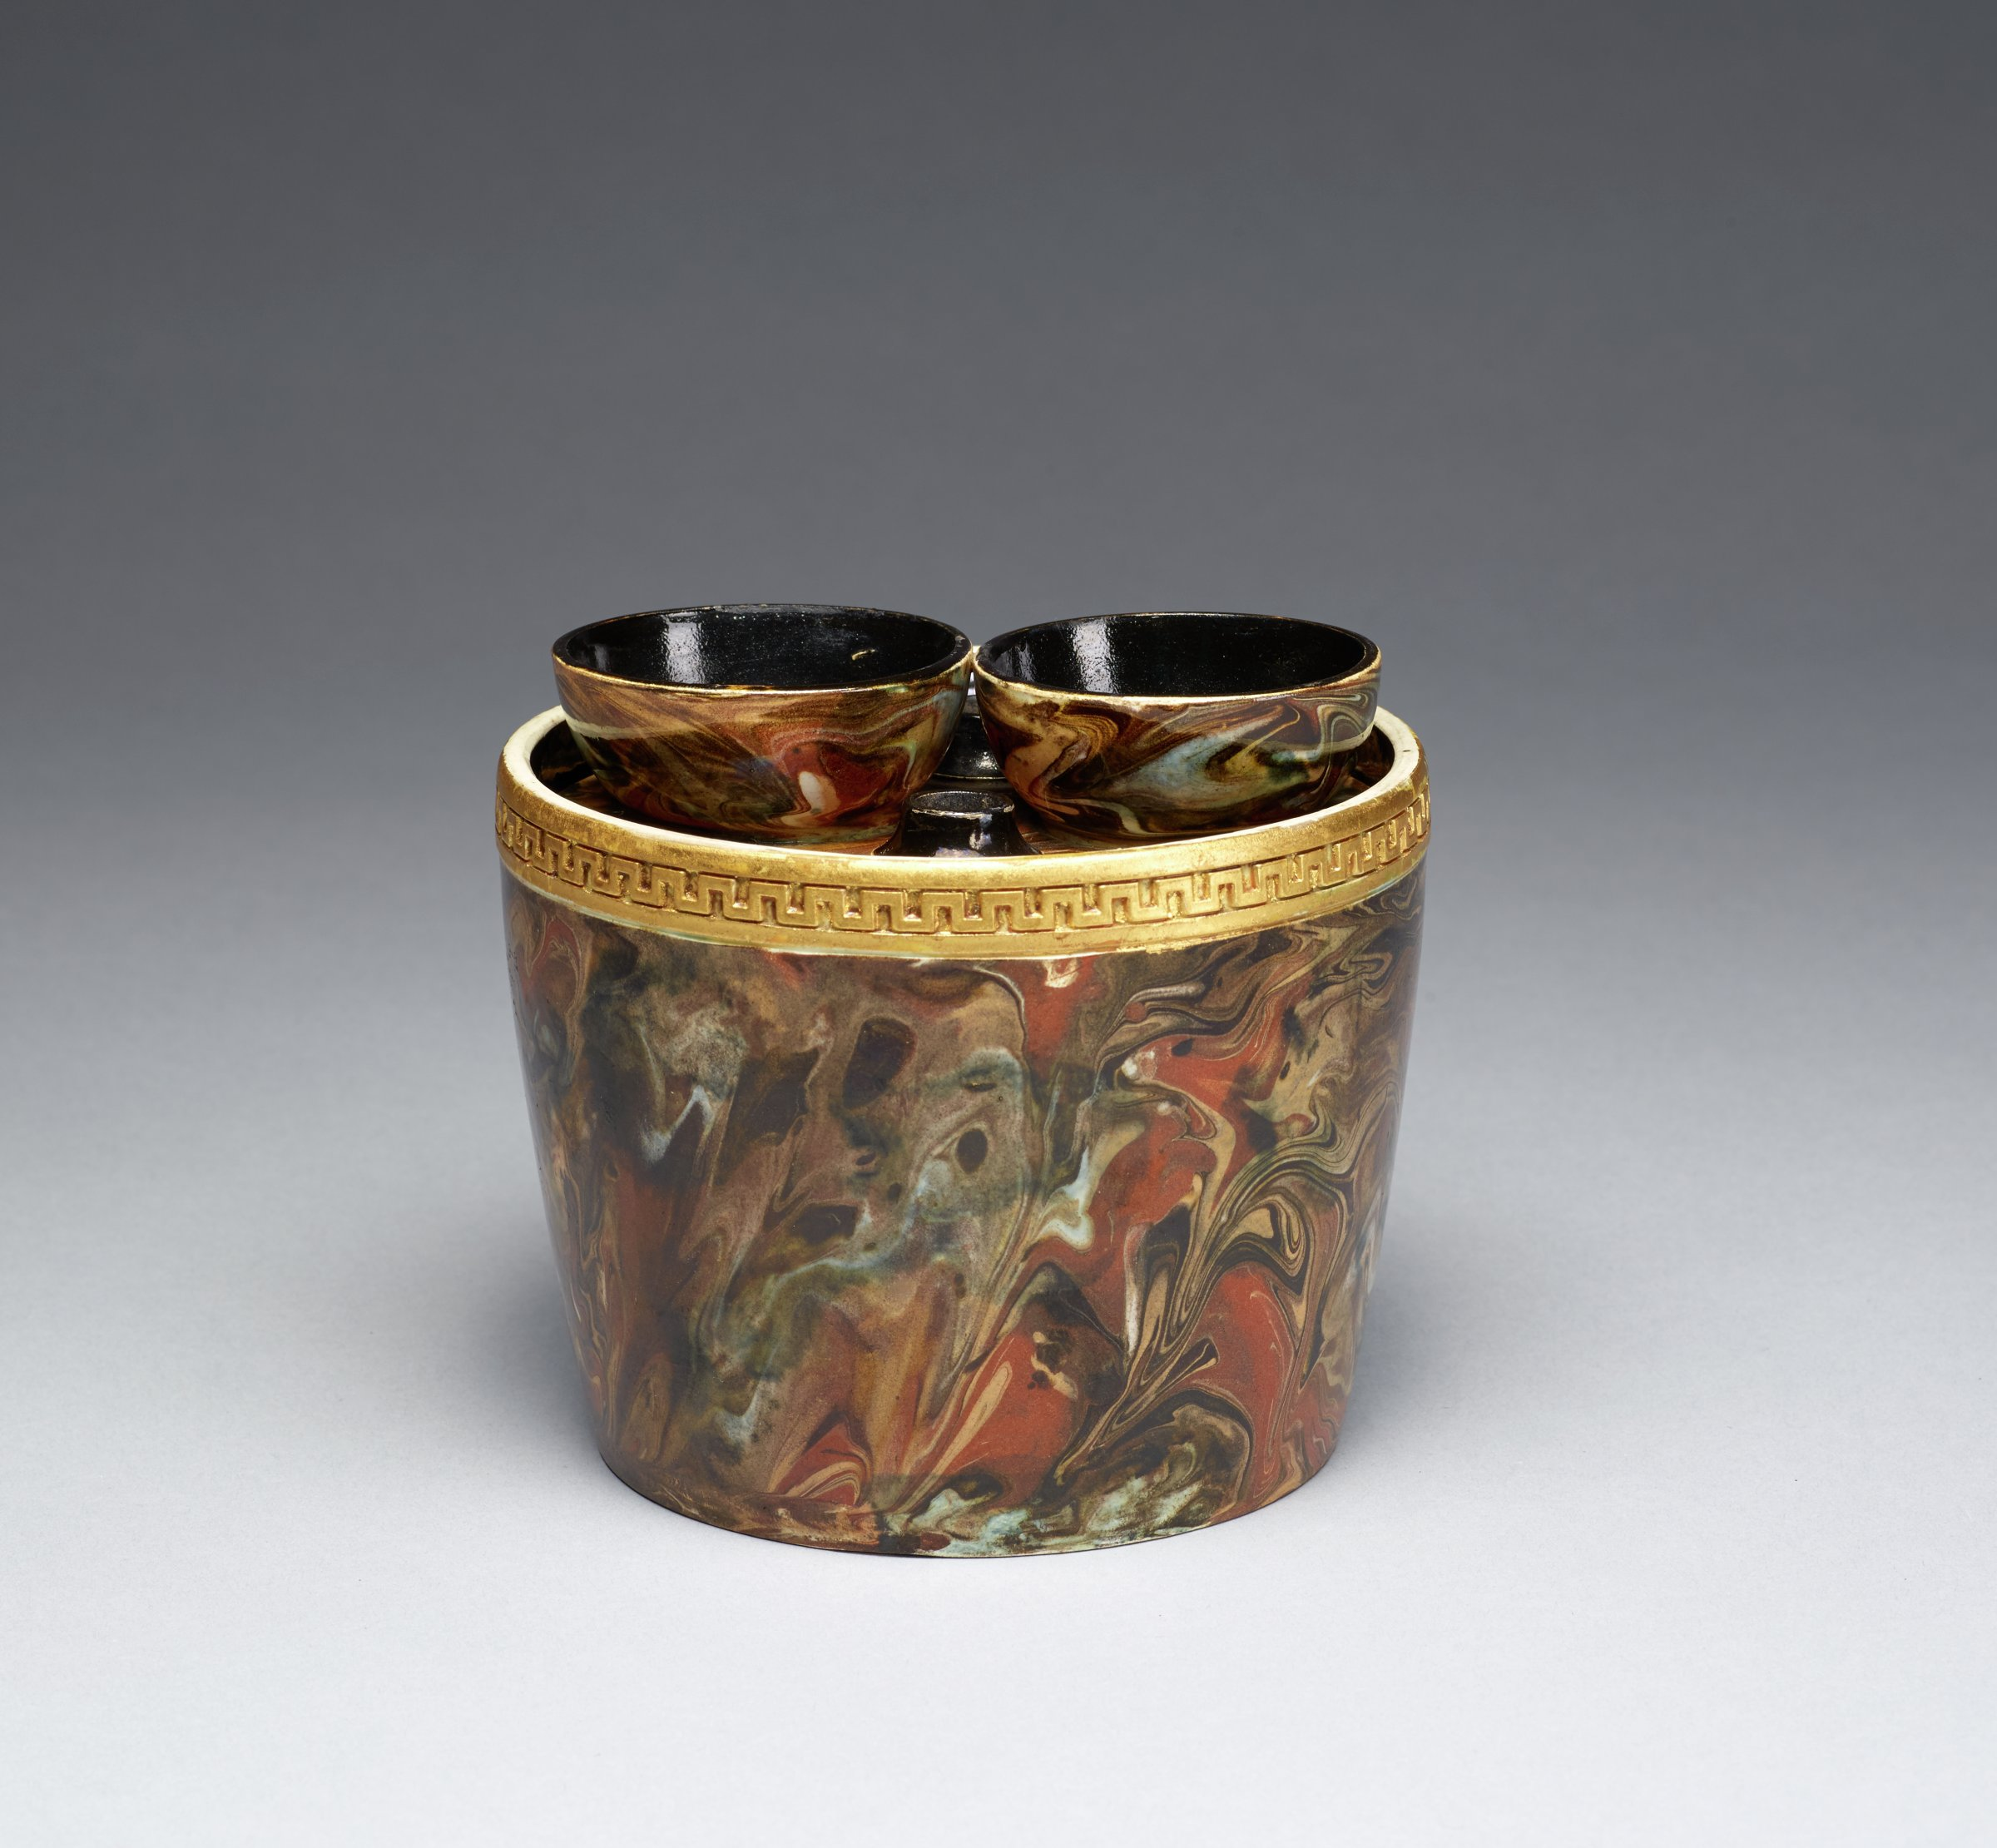 Small bulb pot of white stoneware covered with an opaque variegated agate glaze in shades of brown, beige, green and yellow, below the lip a band of gilded fret work, the fitted cover with two spouts to hold bulbs and two smaller air holes, both the interior of the pot and underside of the cover are glazed black.